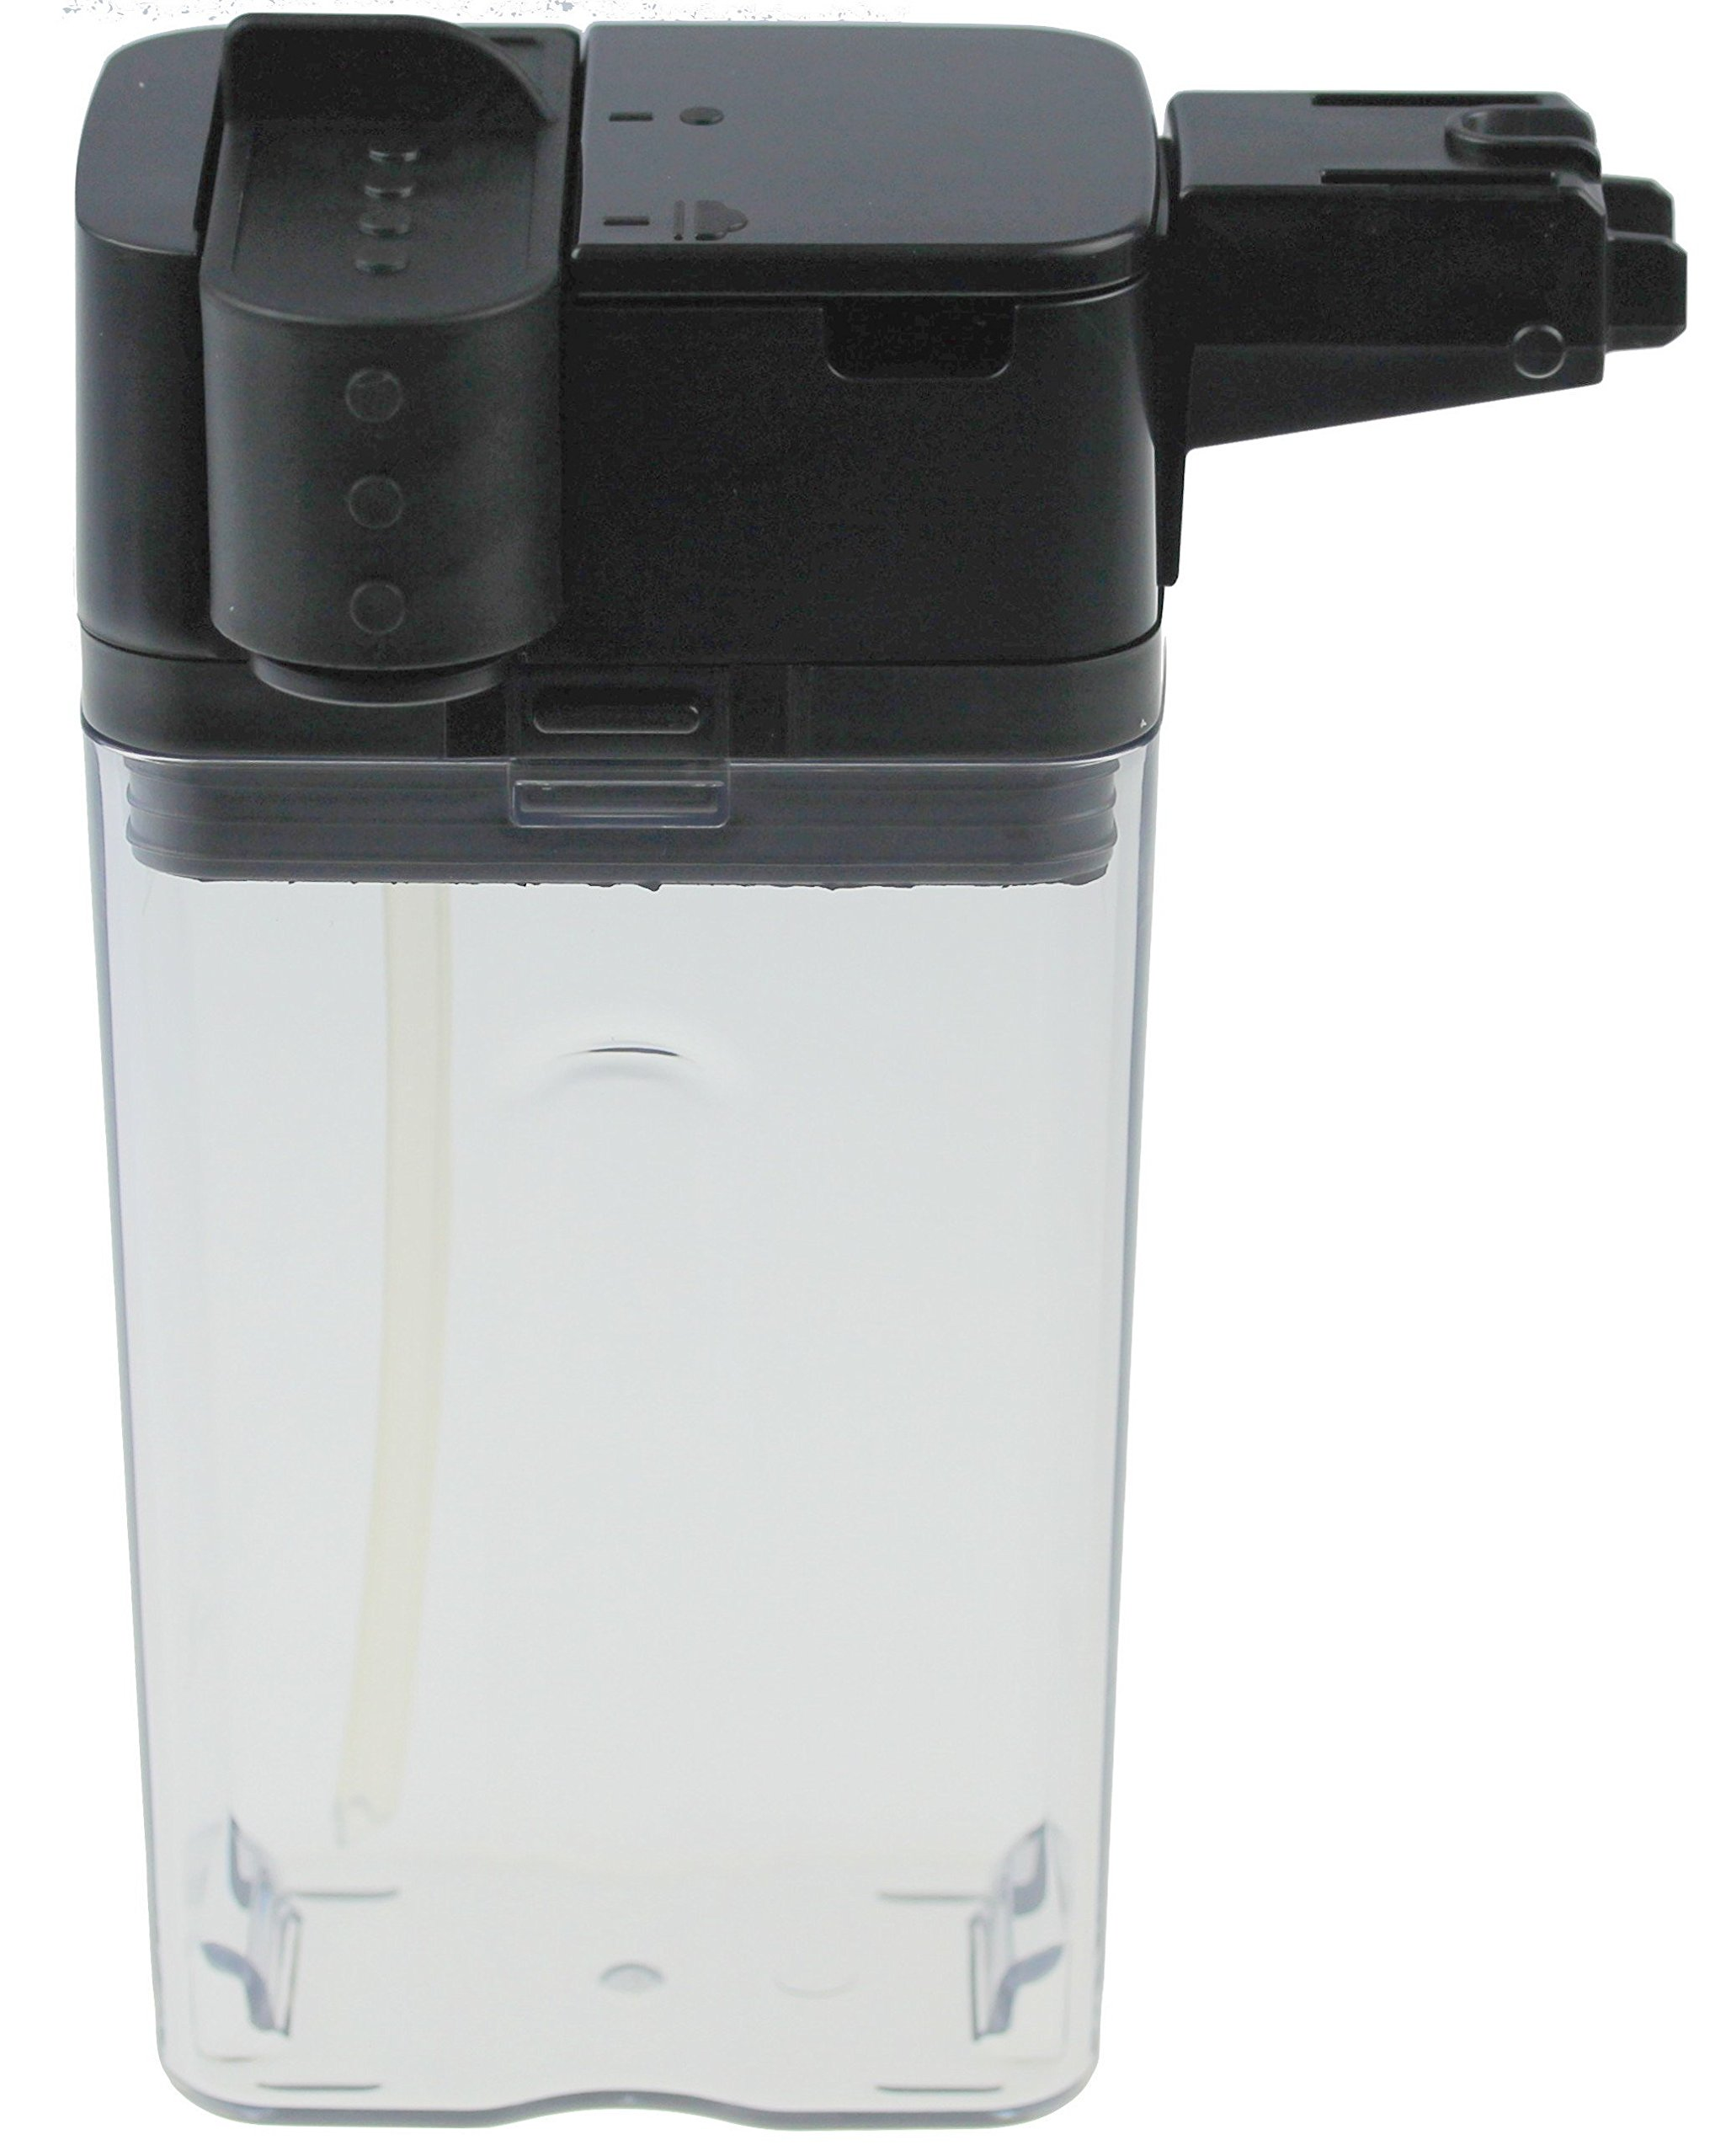 Philips-CP0153-Milchbehlter-fr-Kaffeevollautomaten